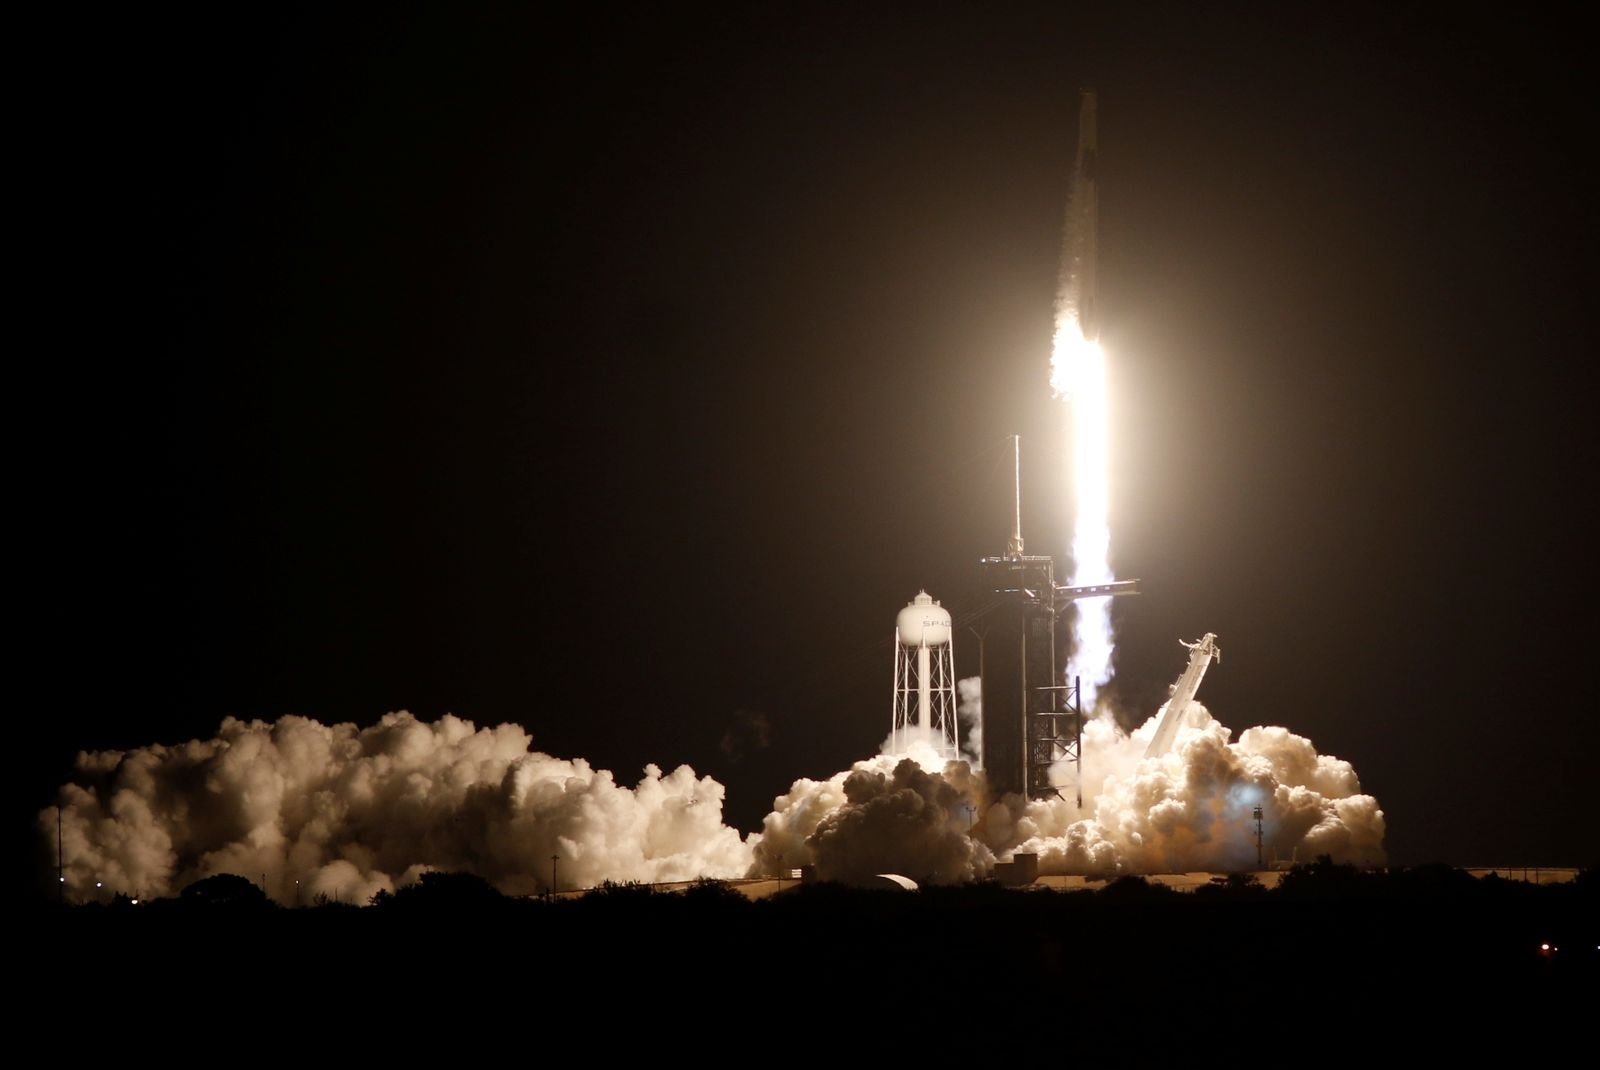 A SpaceX Falcon 9 rocket, with the Crew Dragon capsule, is launched carrying four astronauts on the first operational NASA commercial crew mission at Kennedy Space Center in Cape Canaveral, Florida